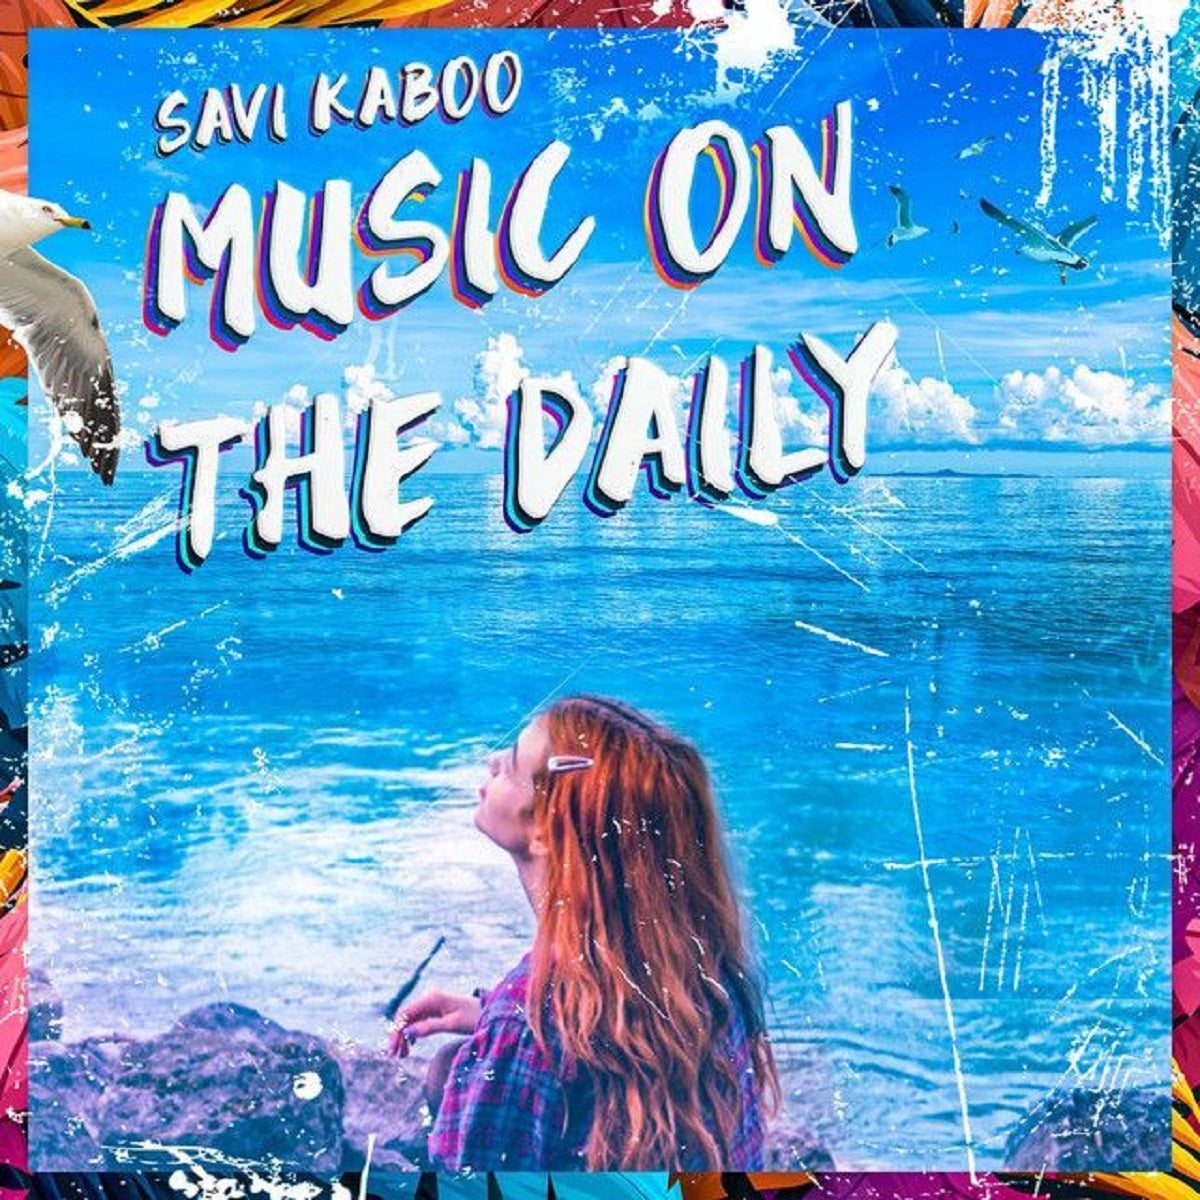 Savi Kaboo – 'Music on the Daily'